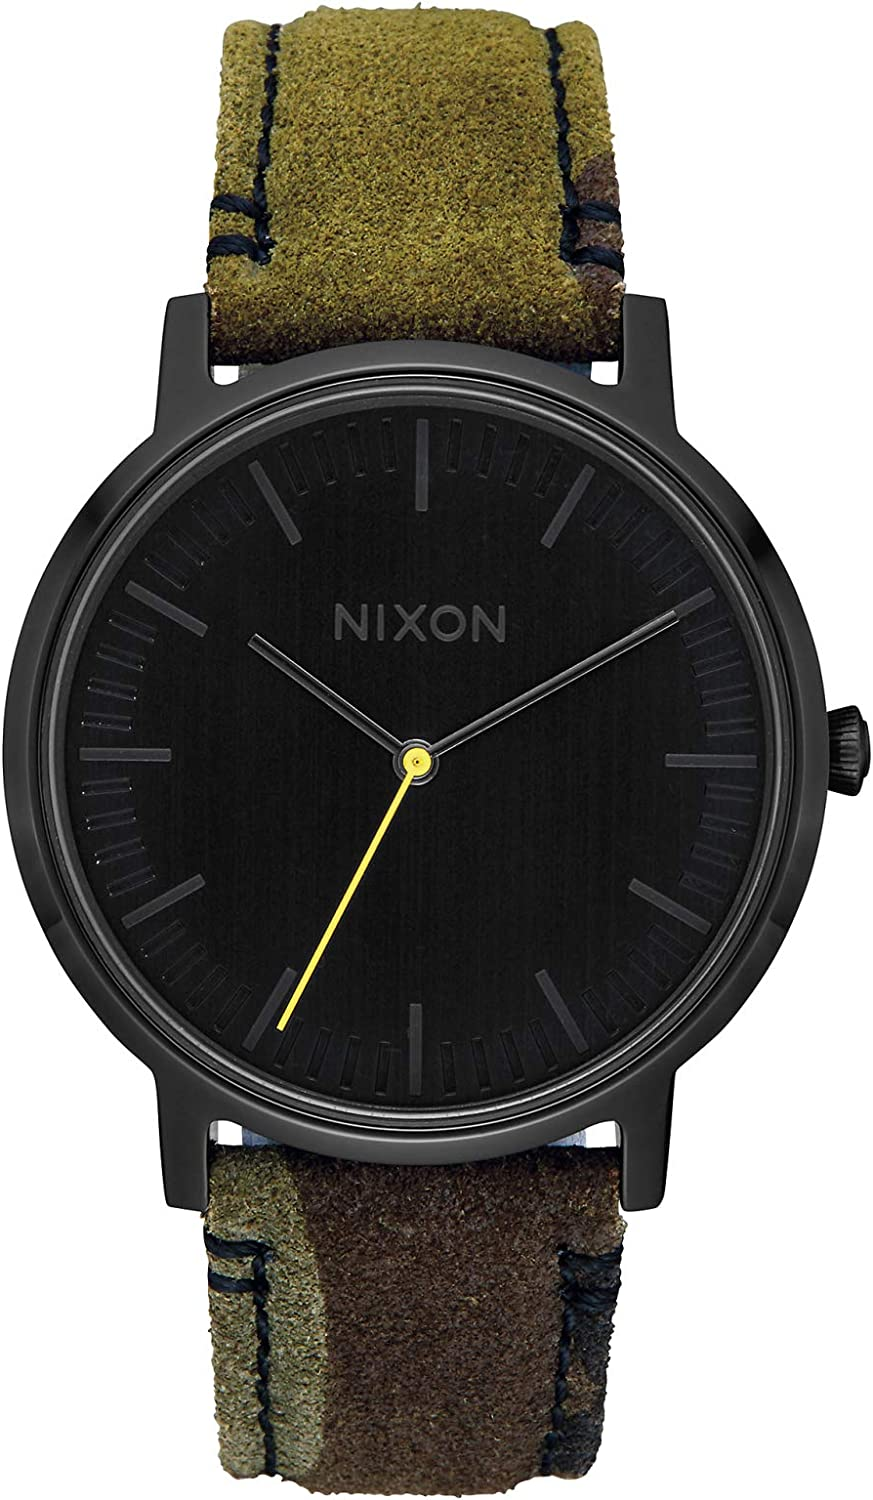 Nixon Porter Leather A1058 50m Water Resistant Men's Watch (20-18mm Leather Band and 40mm Watch Face)